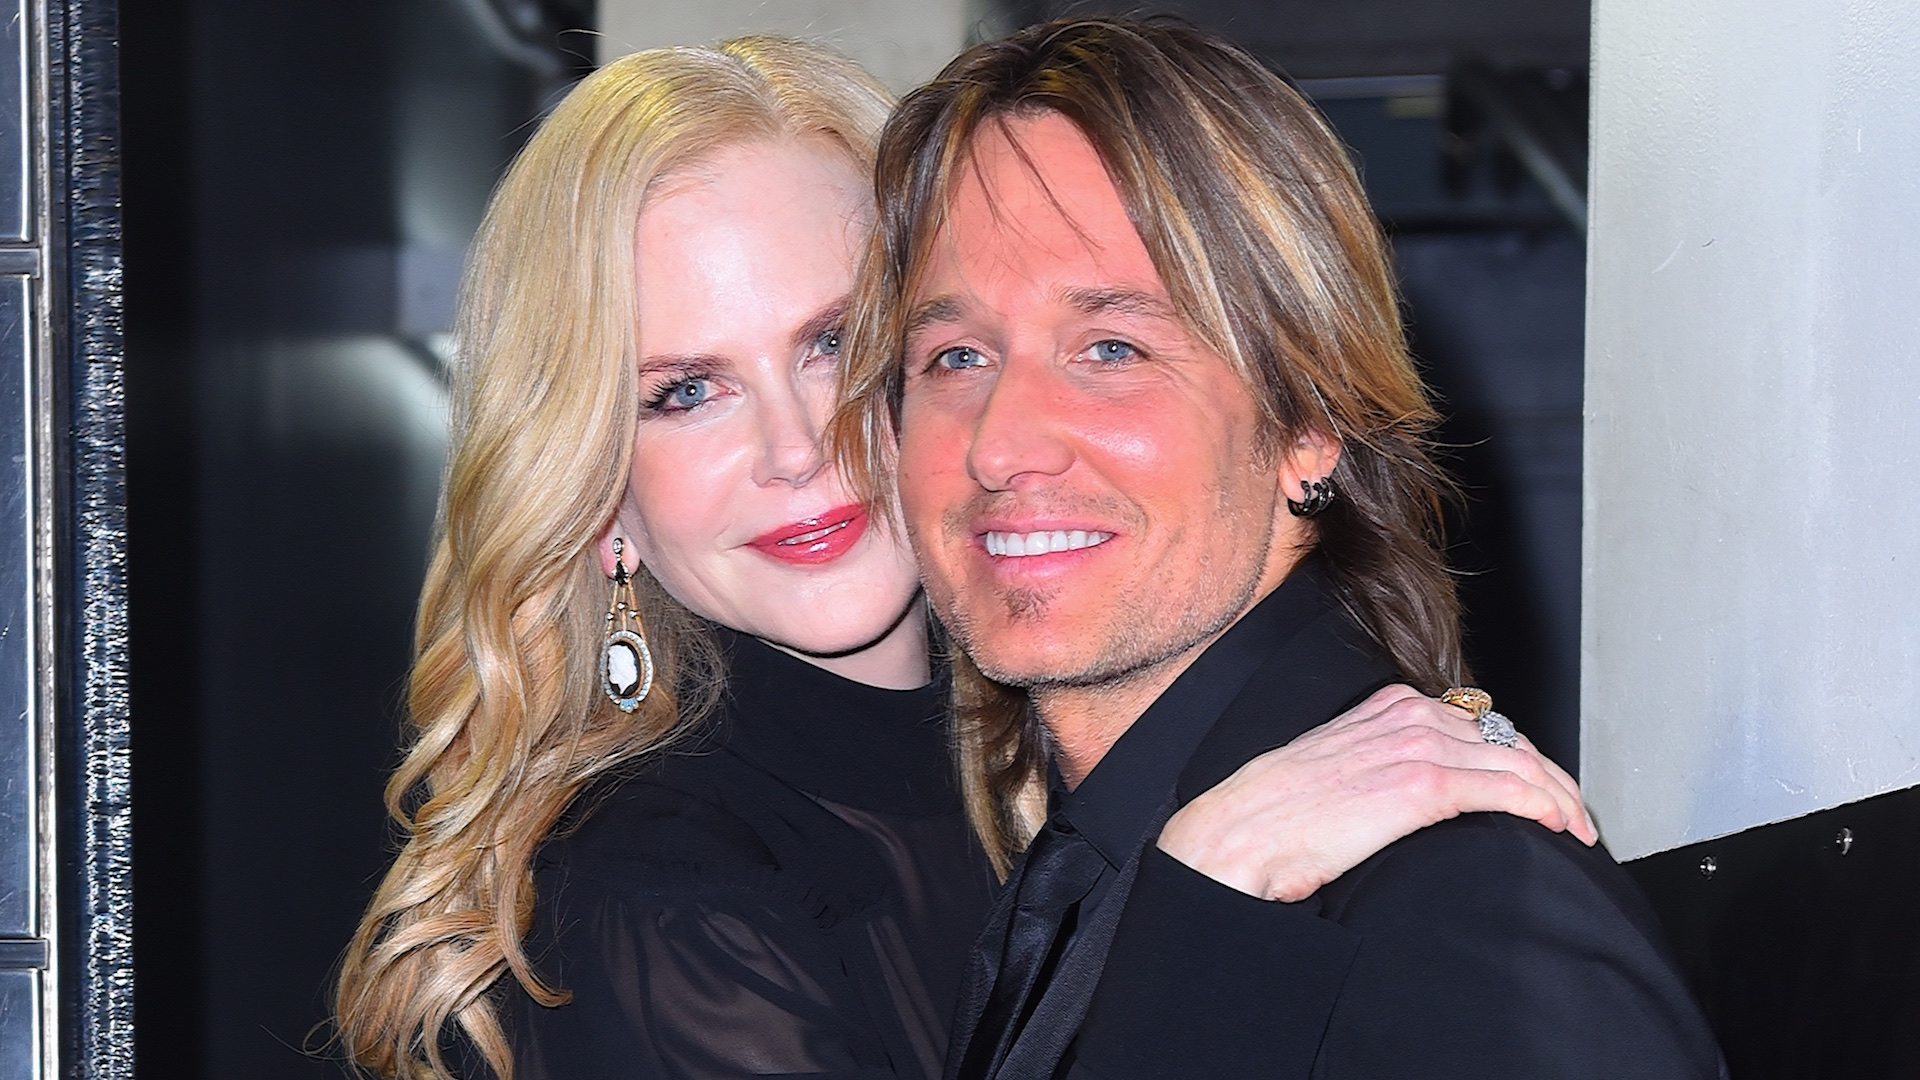 Keith Urban Nicole Kidman Ring In 11th Wedding Anniversary: You Have To See This Throwback Video From Nicole Kidman